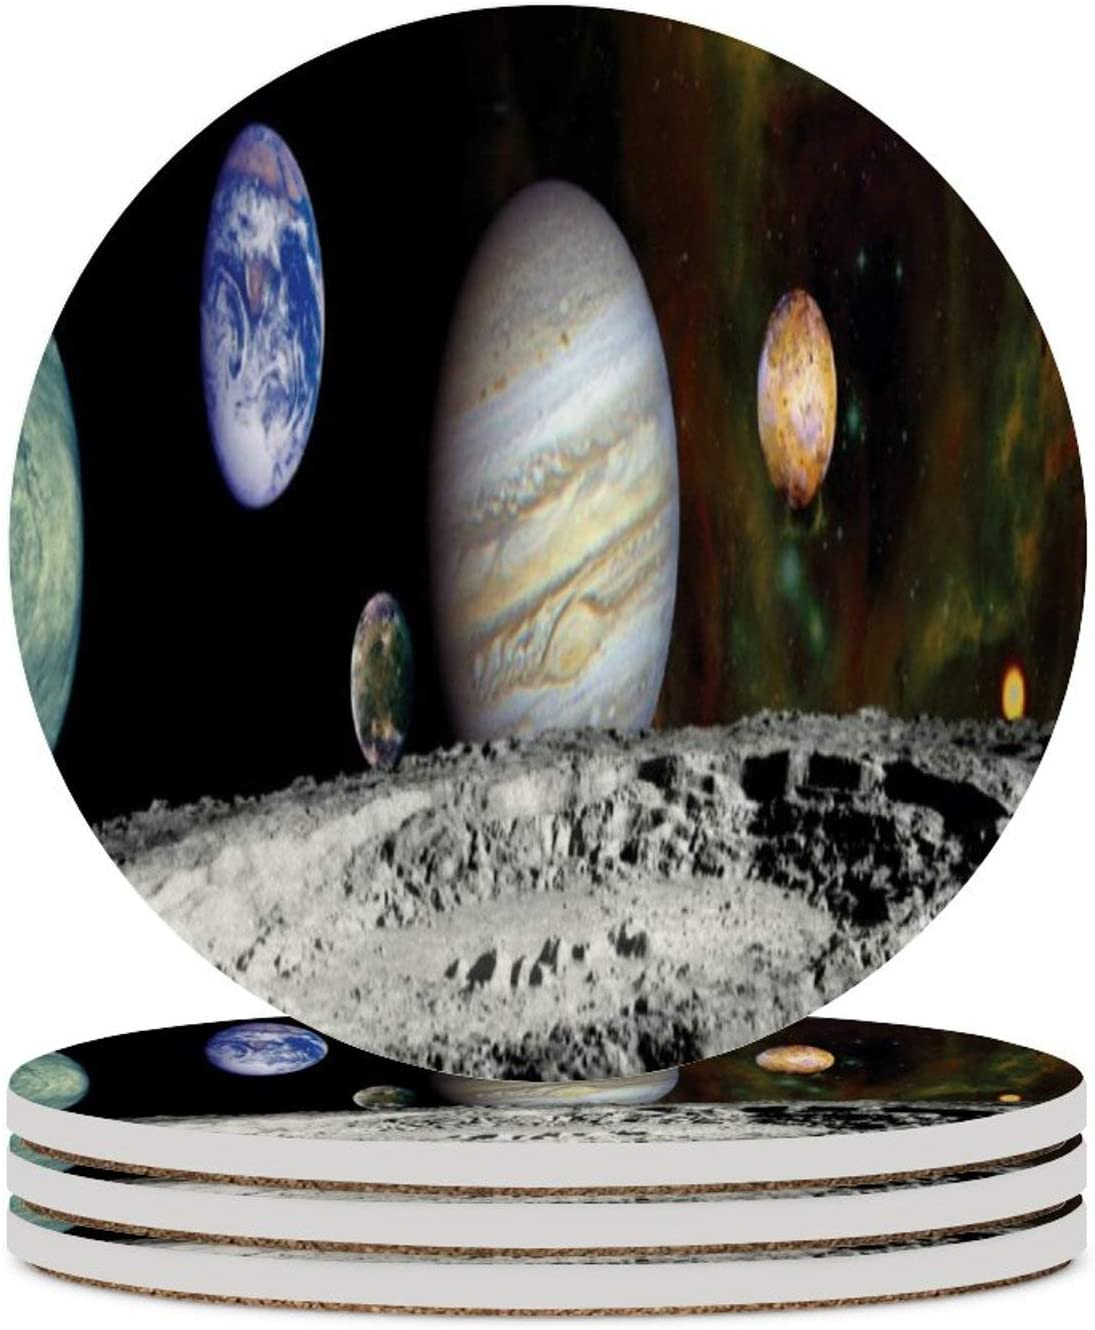 4pcs Solar System Voyager Images Montage Space Ceramic Coasters For Drinks,Heat Resistant Drink Coaster Round Drinks Absorbent Stone Coaster Set For Friends Men Women Funny Birthday Housewarming